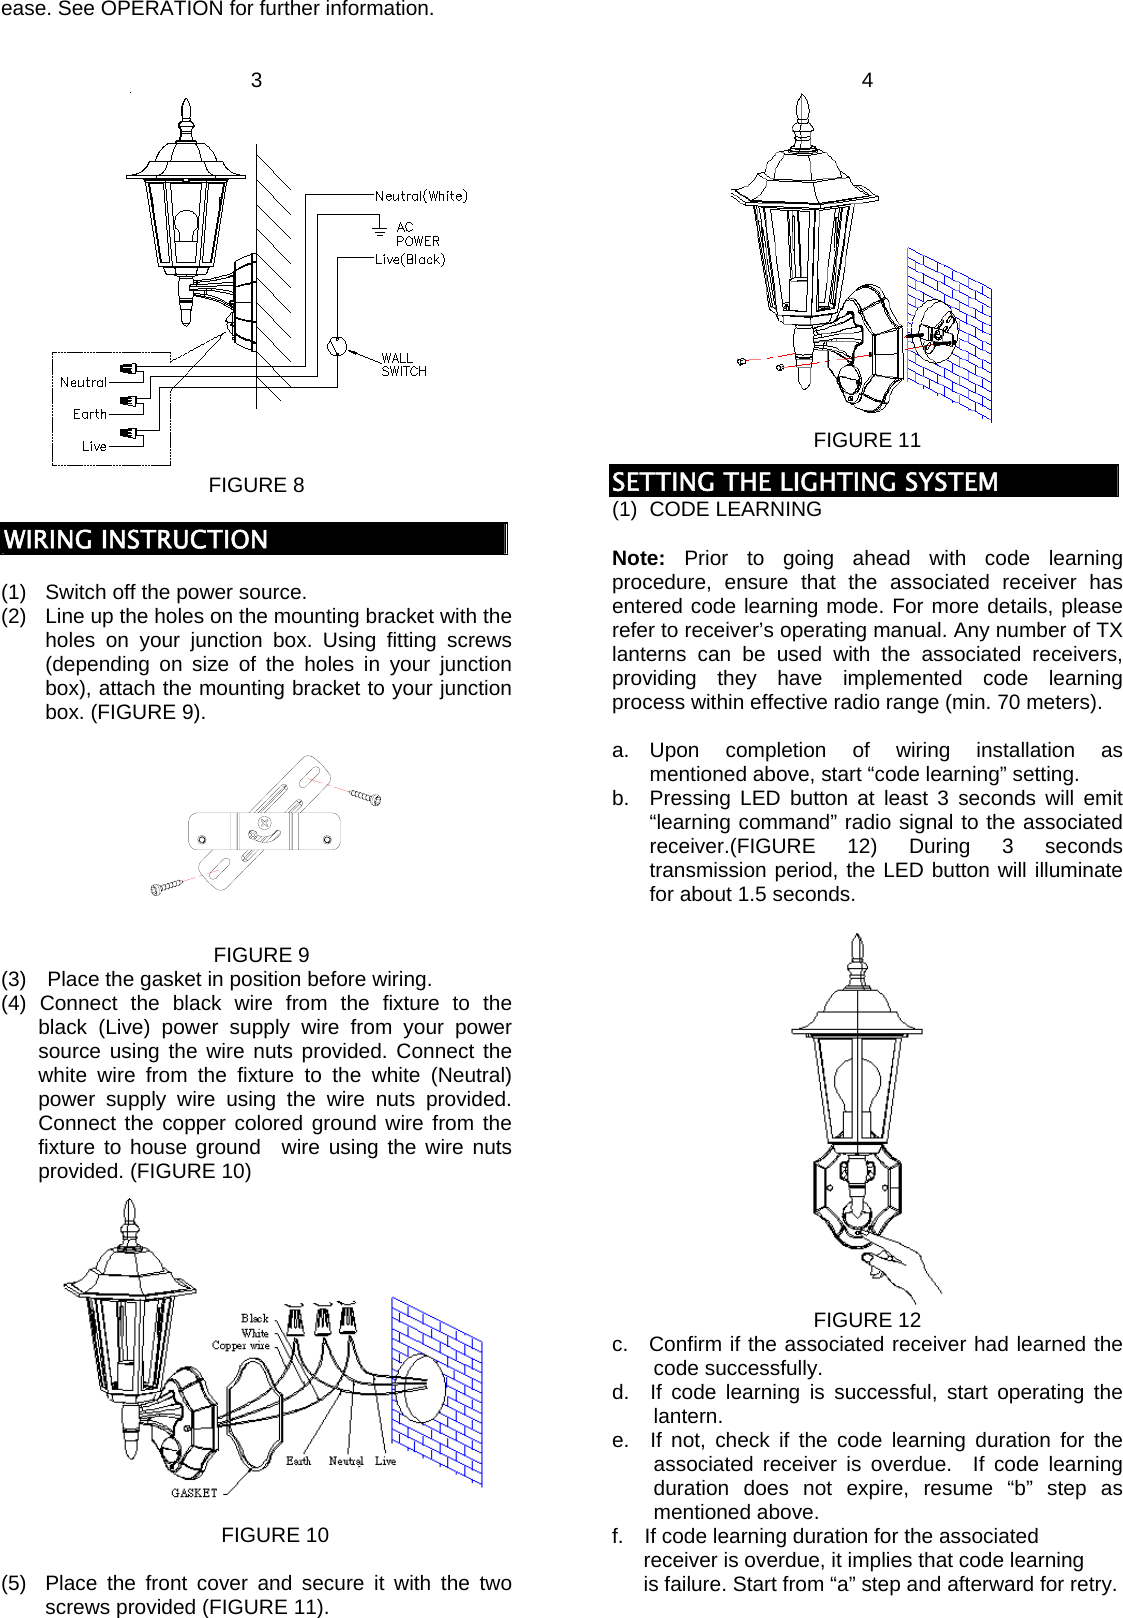 Voltage Neutral And Live Holes Wires Manual Guide